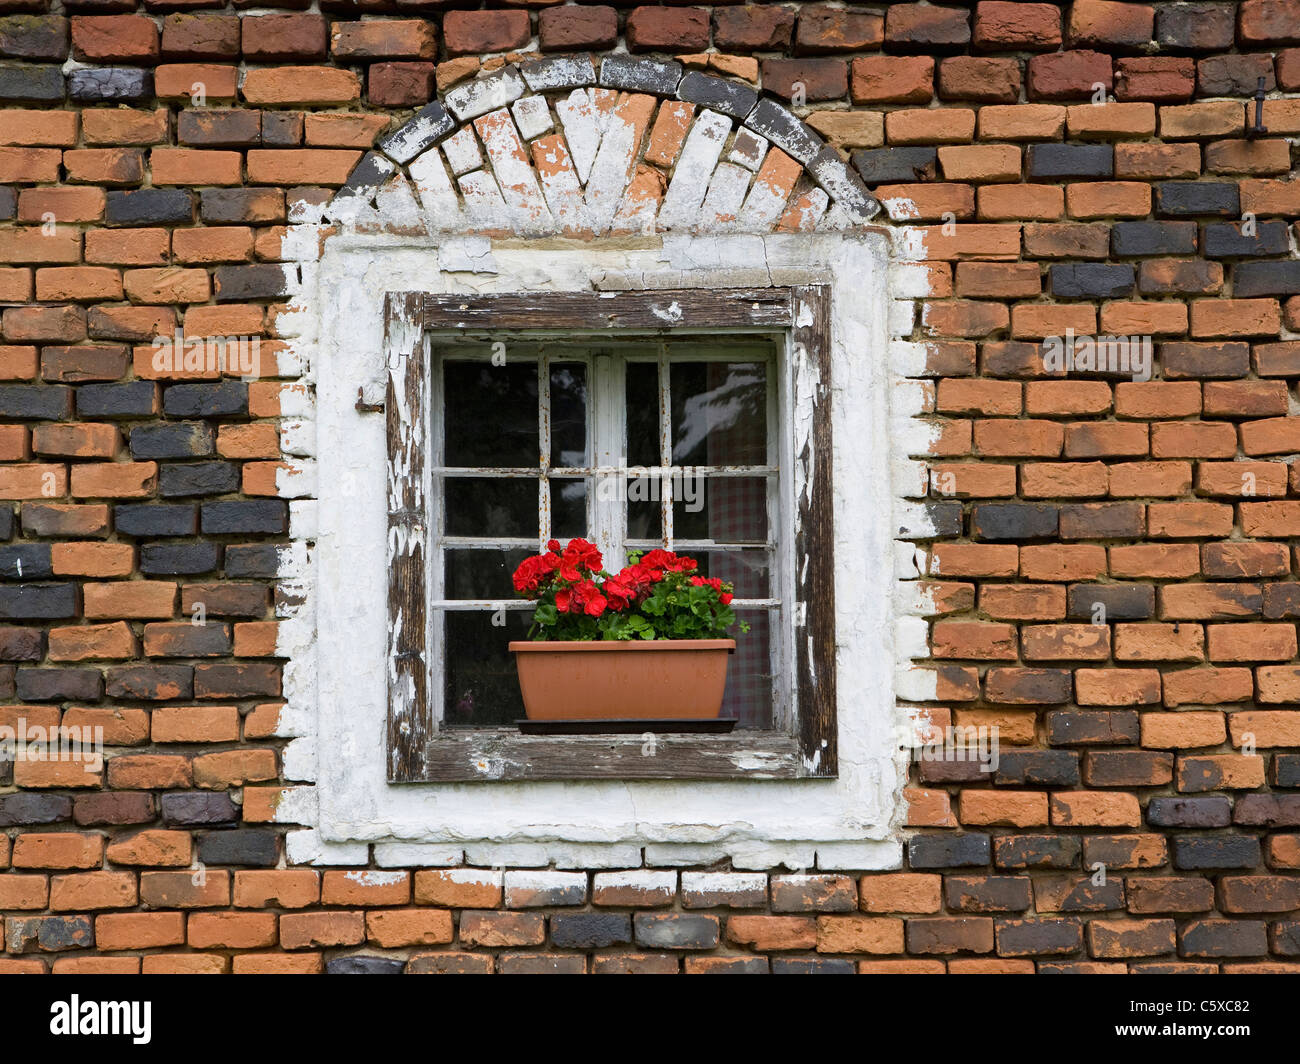 sterreich ober sterreich fenster mit blumenkasten stockfoto bild 38074402 alamy. Black Bedroom Furniture Sets. Home Design Ideas